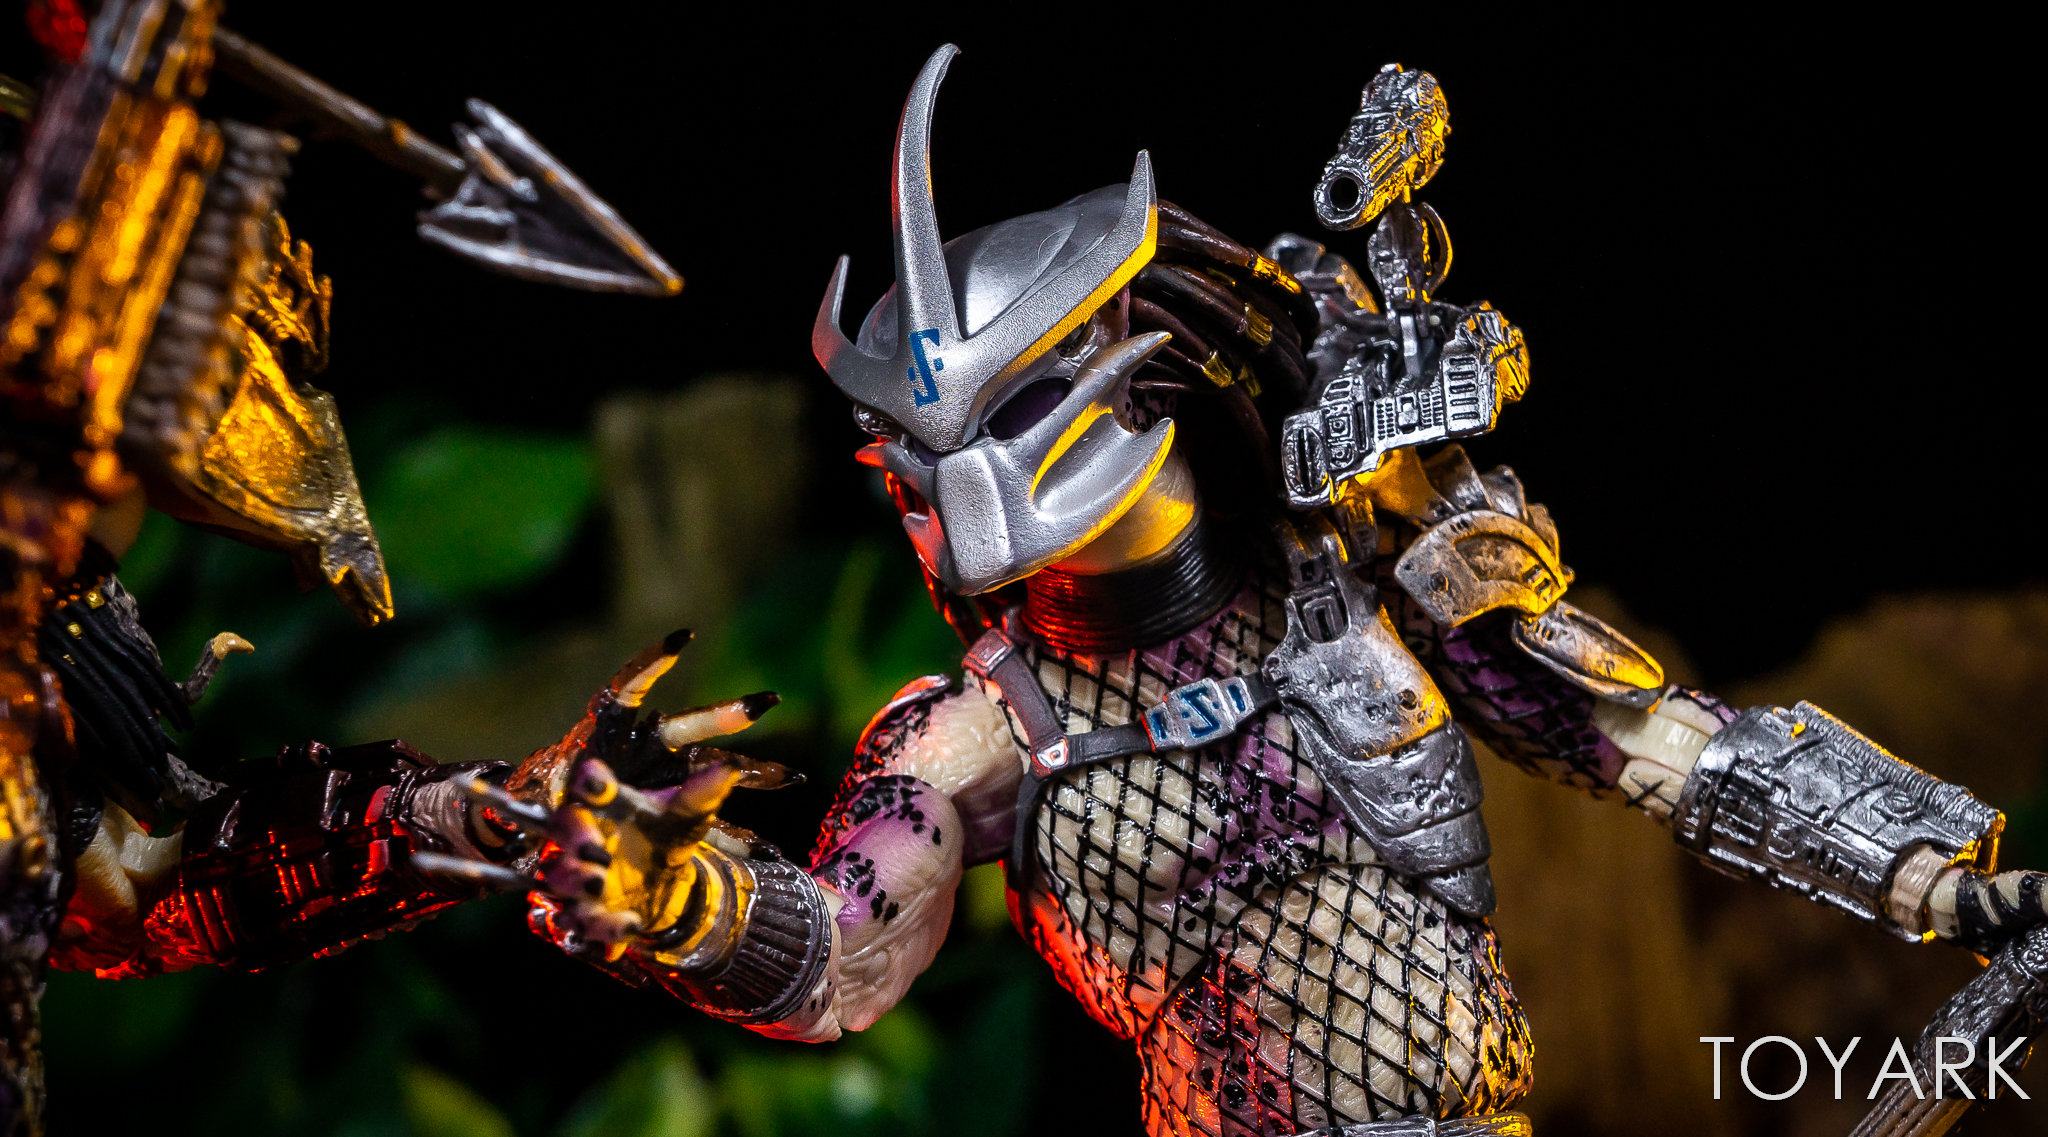 https://news.toyark.com/wp-content/uploads/sites/4/2019/01/NECA-Bad-Blood-vs-Enforcer-054.jpg